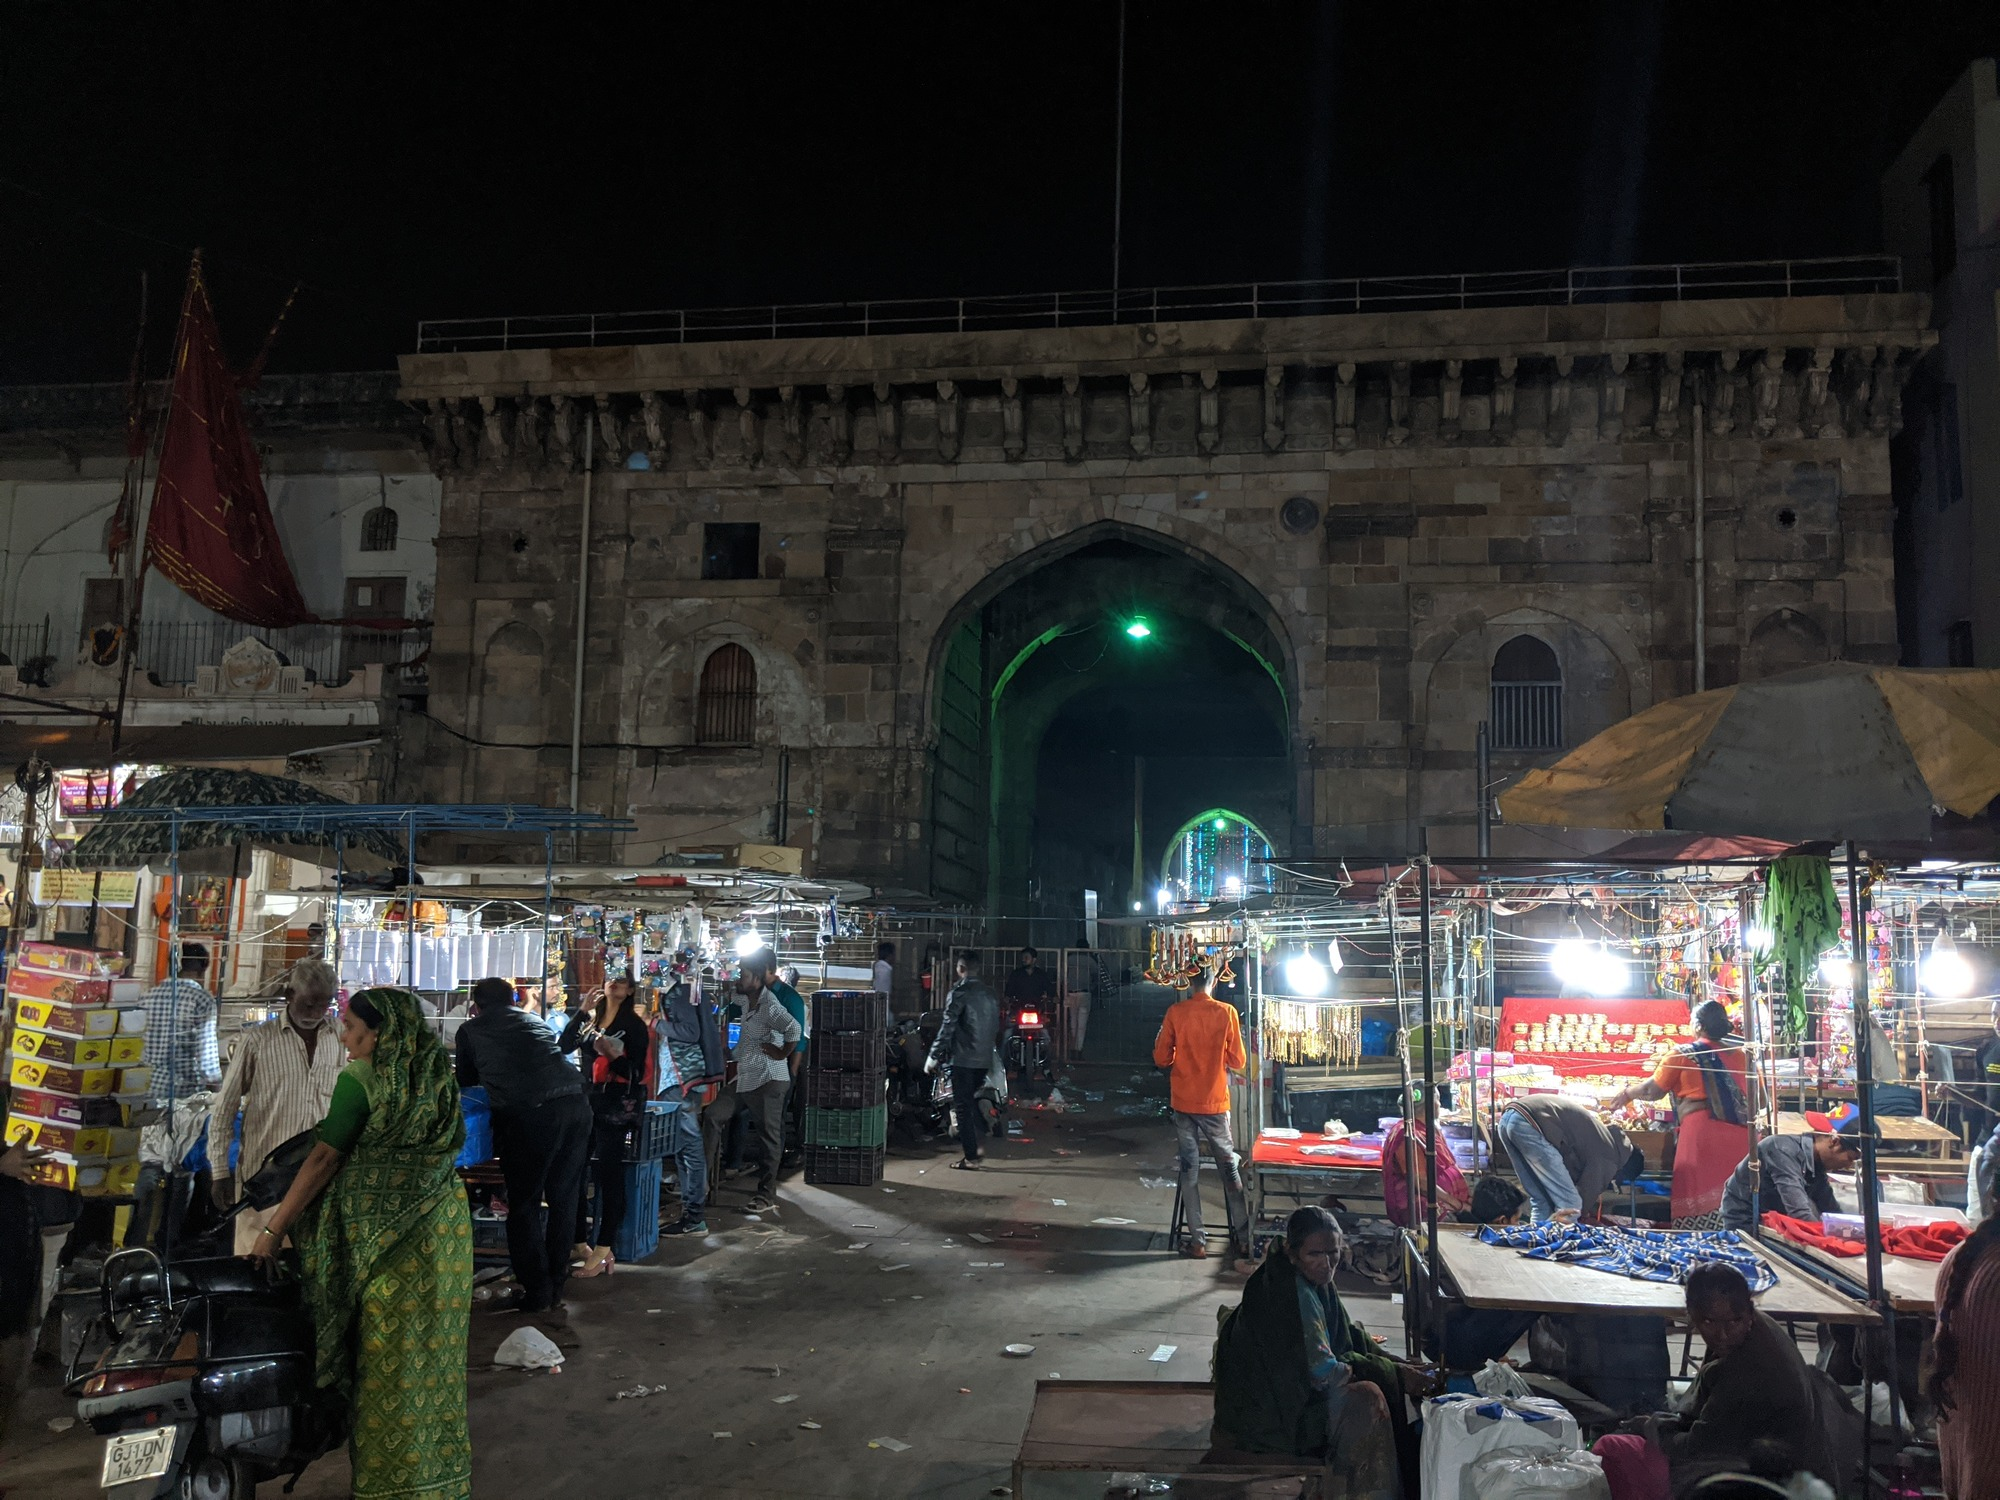 Bhadra Fort is situated in the walled city area of Ahmedabad, India. It was built by Ahmad Shah I in 1411.